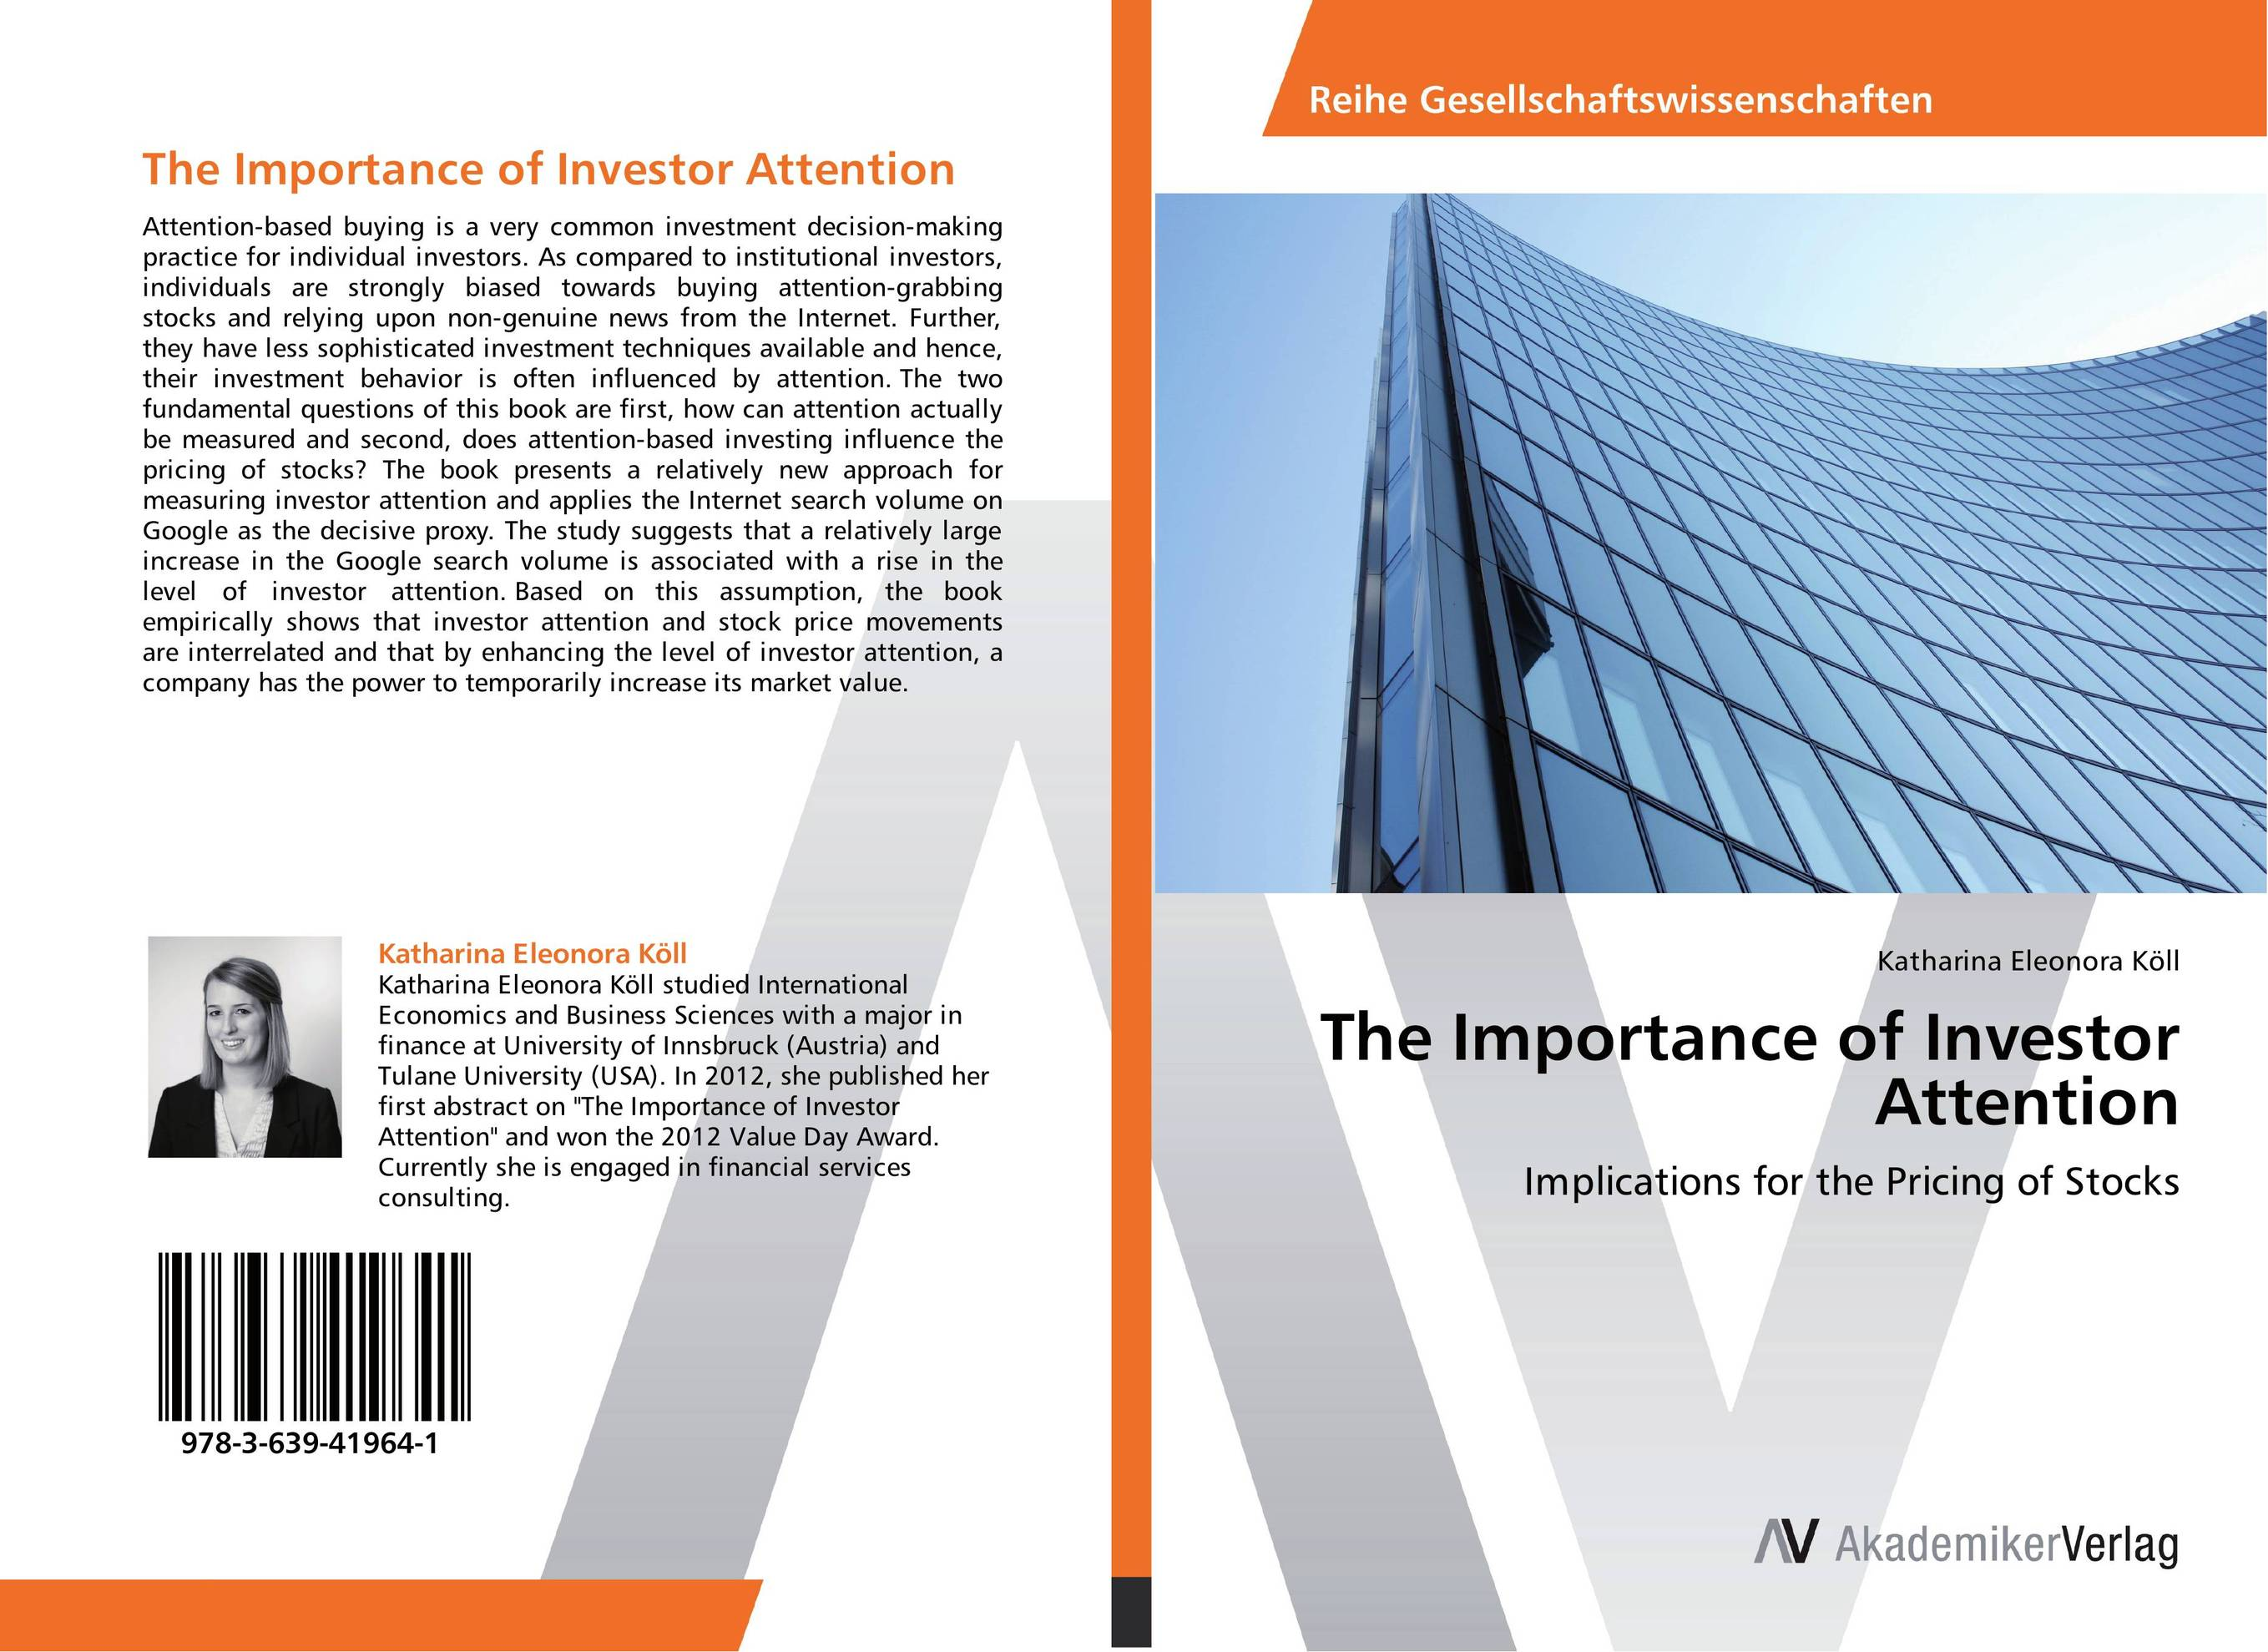 The Importance of Investor Attention edgar iii wachenheim common stocks and common sense the strategies analyses decisions and emotions of a particularly successful value investor